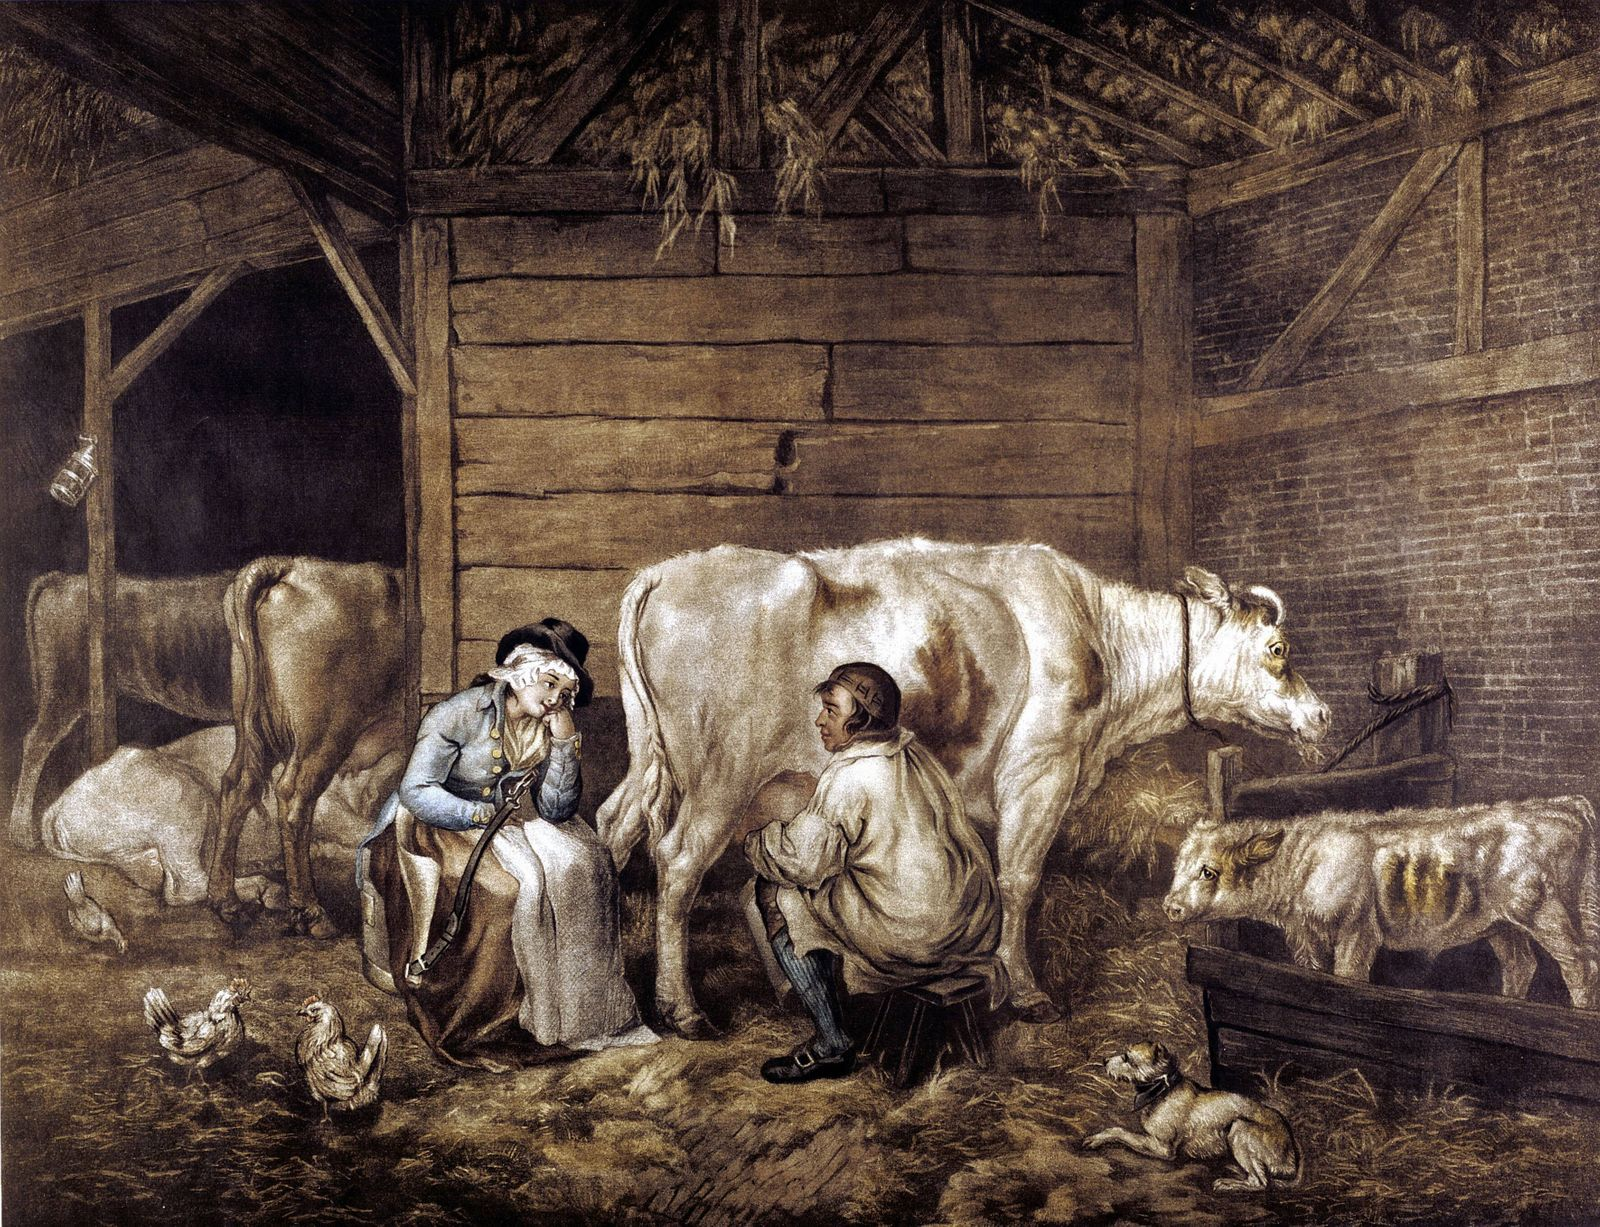 The Cowshed The Cowshed mezzotint after George Morland 1763 1804 English artist Cowman milks into